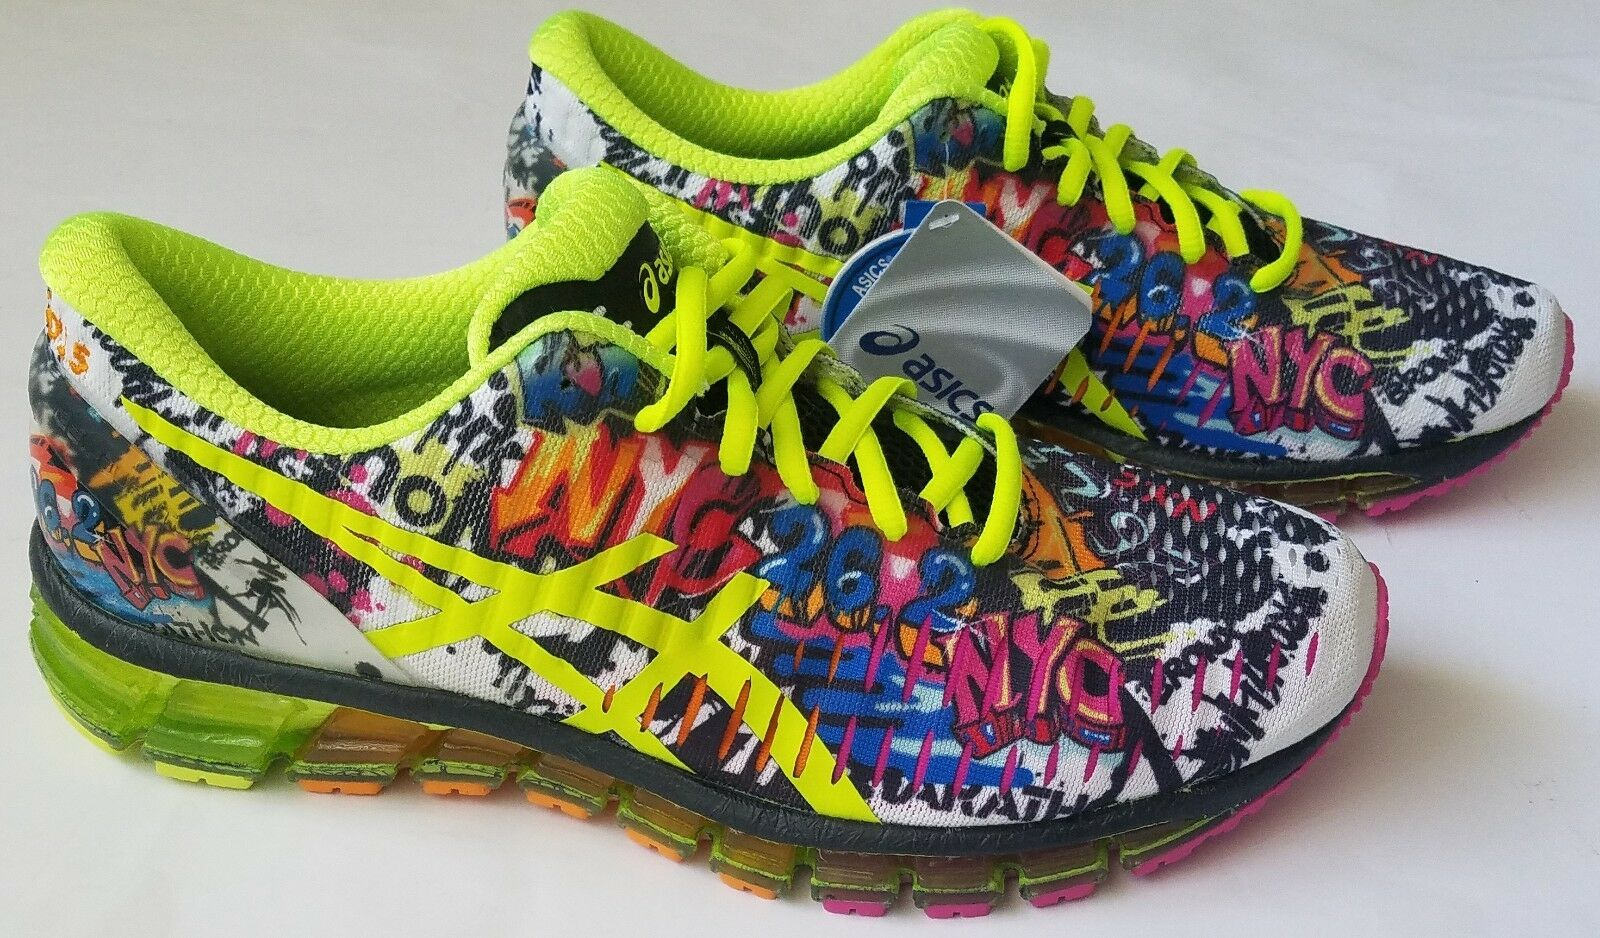 ASICS GEL Quantum 360 Maraton de NYC 11,5 Mujer running zapatos t5q8n US 11,5 NYC Rare New Wild Casual Shoes 6f952e